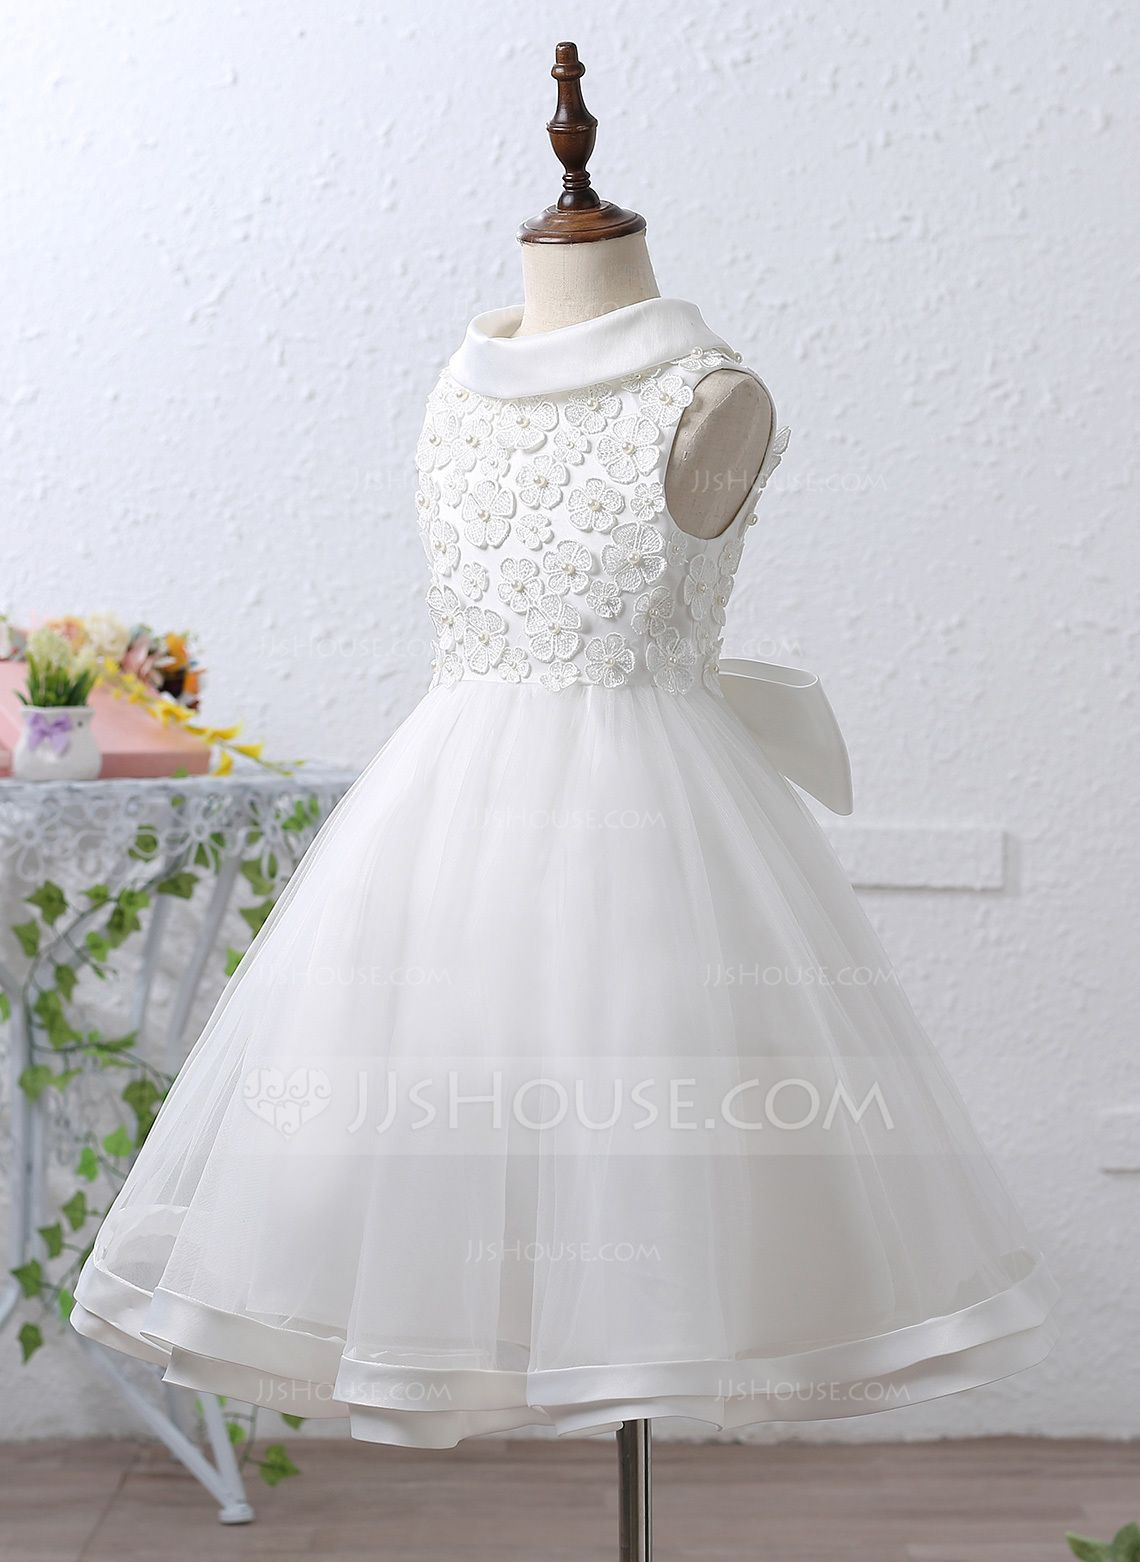 Dress for wedding party for girl  JJsHouse as the global leading online retailer provides a large